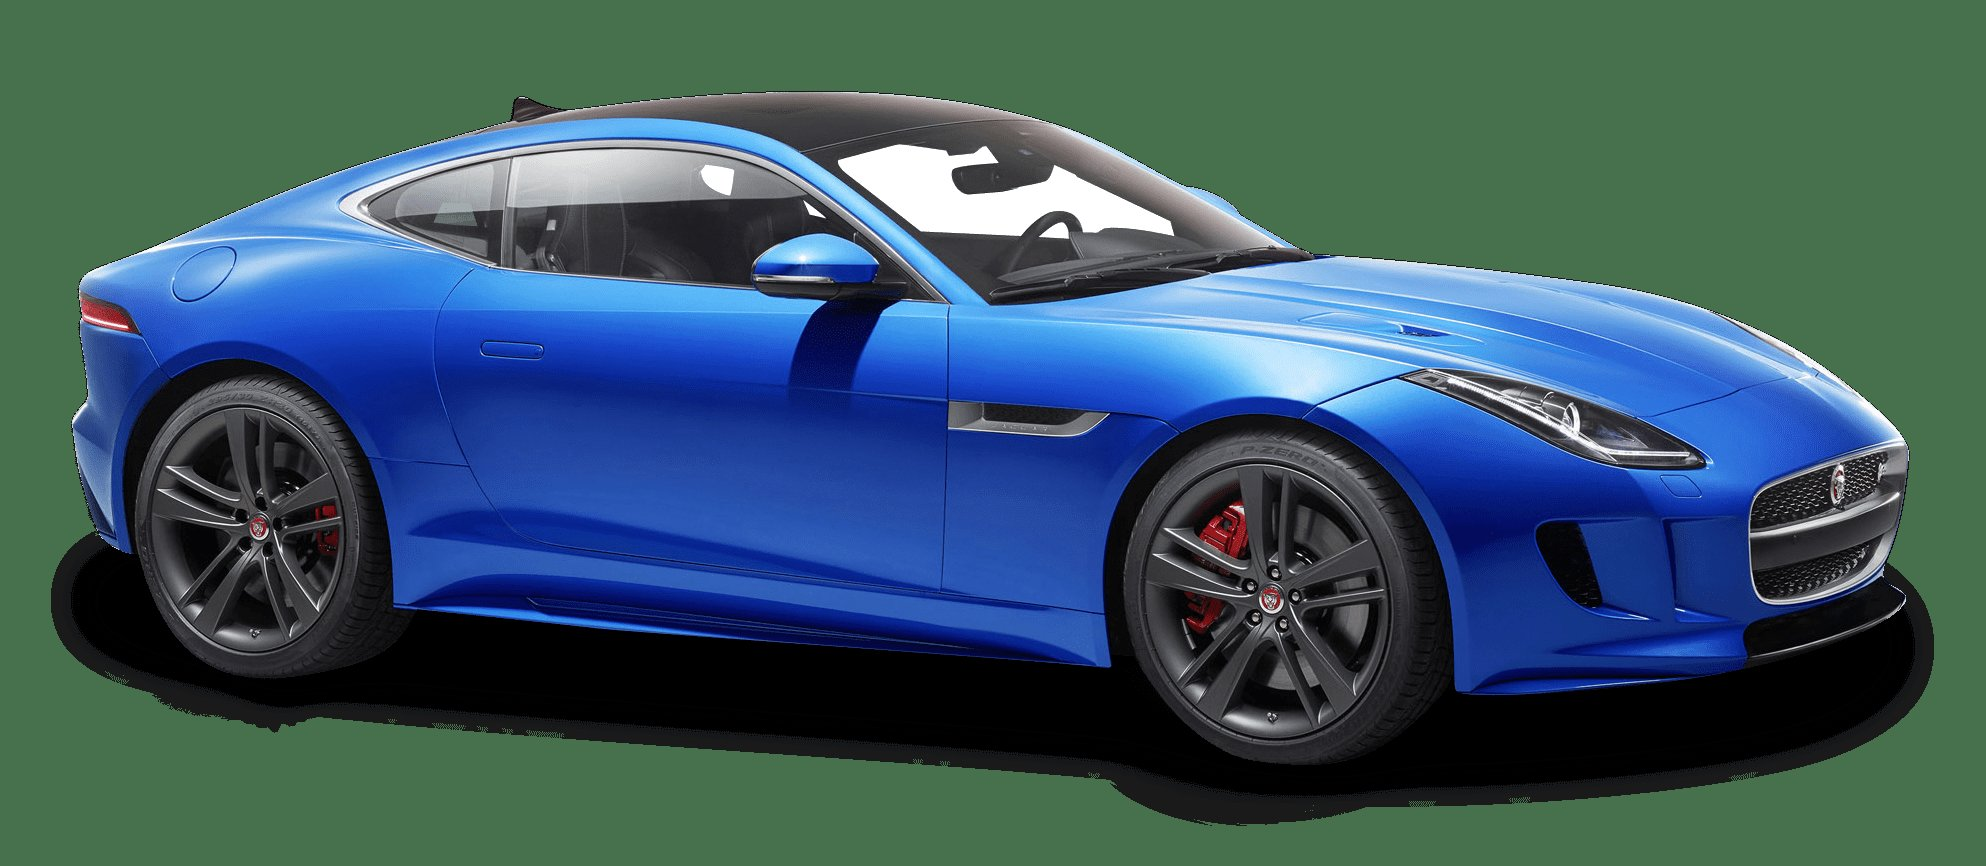 New Jaguar F Type Luxury Sports Blue Car Png Image Pngpix On This Month